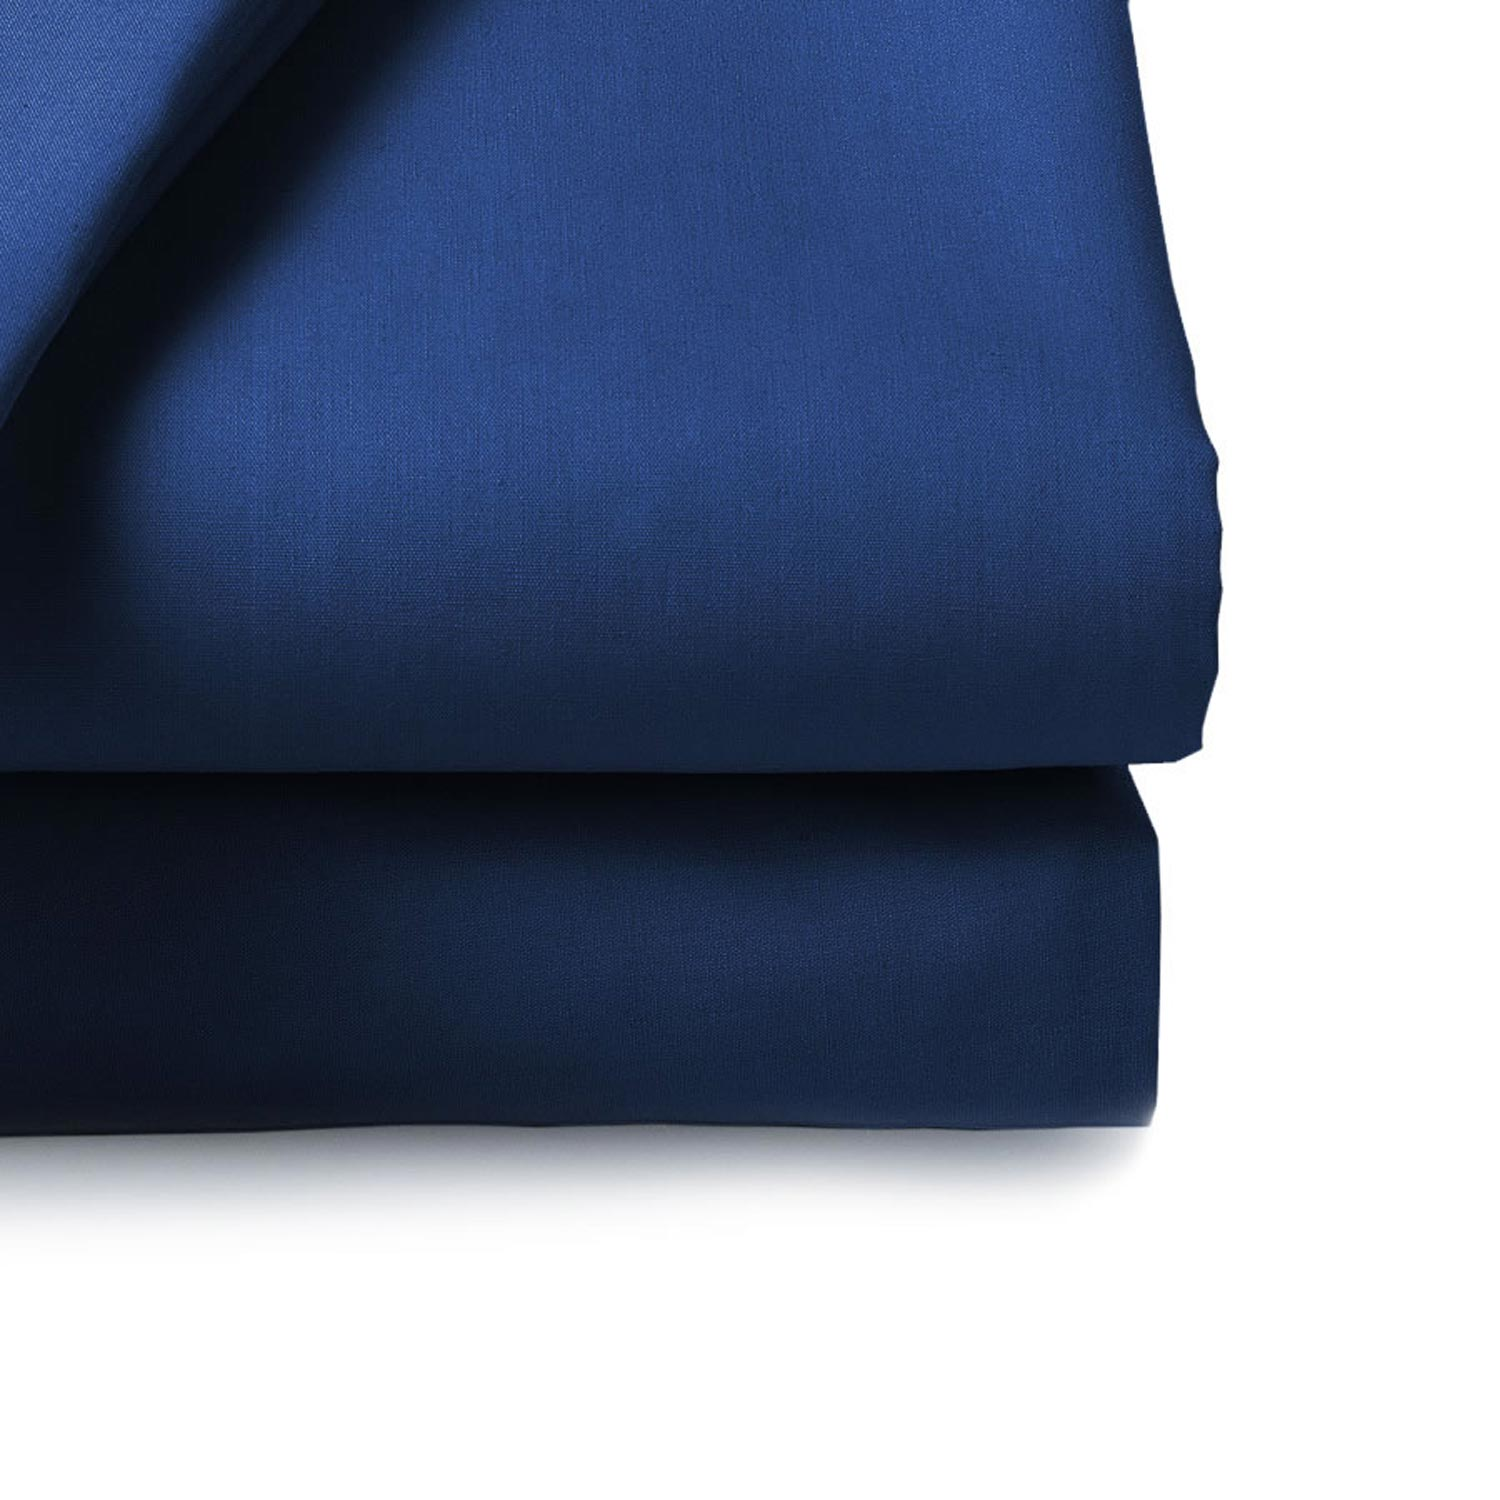 Image of Belledorm 200 Thread Count Fitted Sheet, Single, Navy